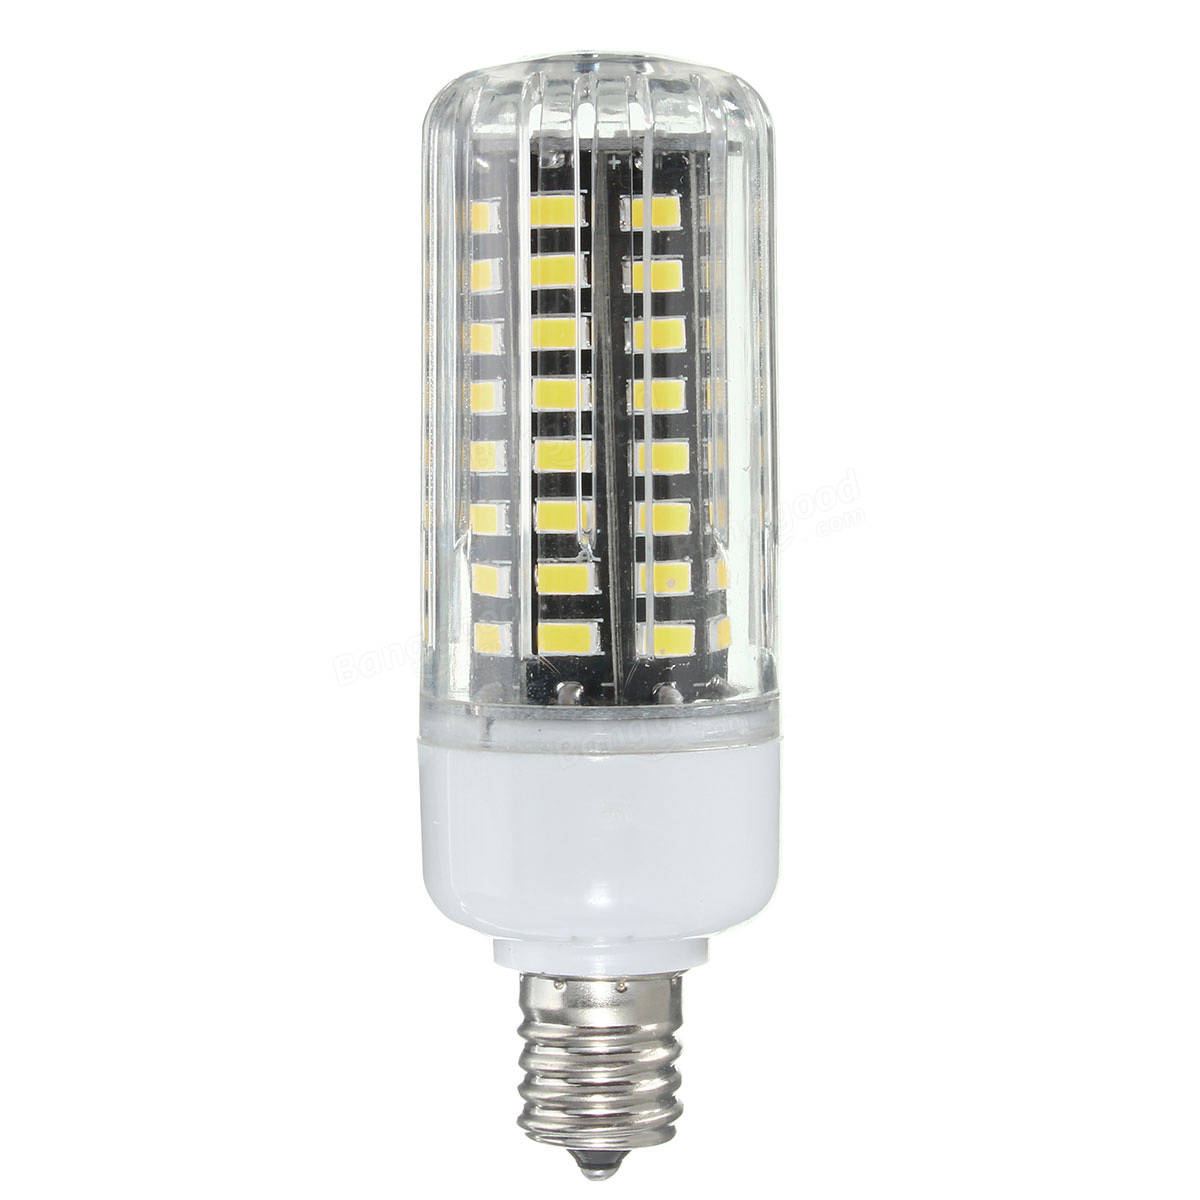 e27 e14 e12 e17 gu10 b22 led corn bulb 7w 72 smd 5736 led lamp ampoule led light ac85 265v sale. Black Bedroom Furniture Sets. Home Design Ideas